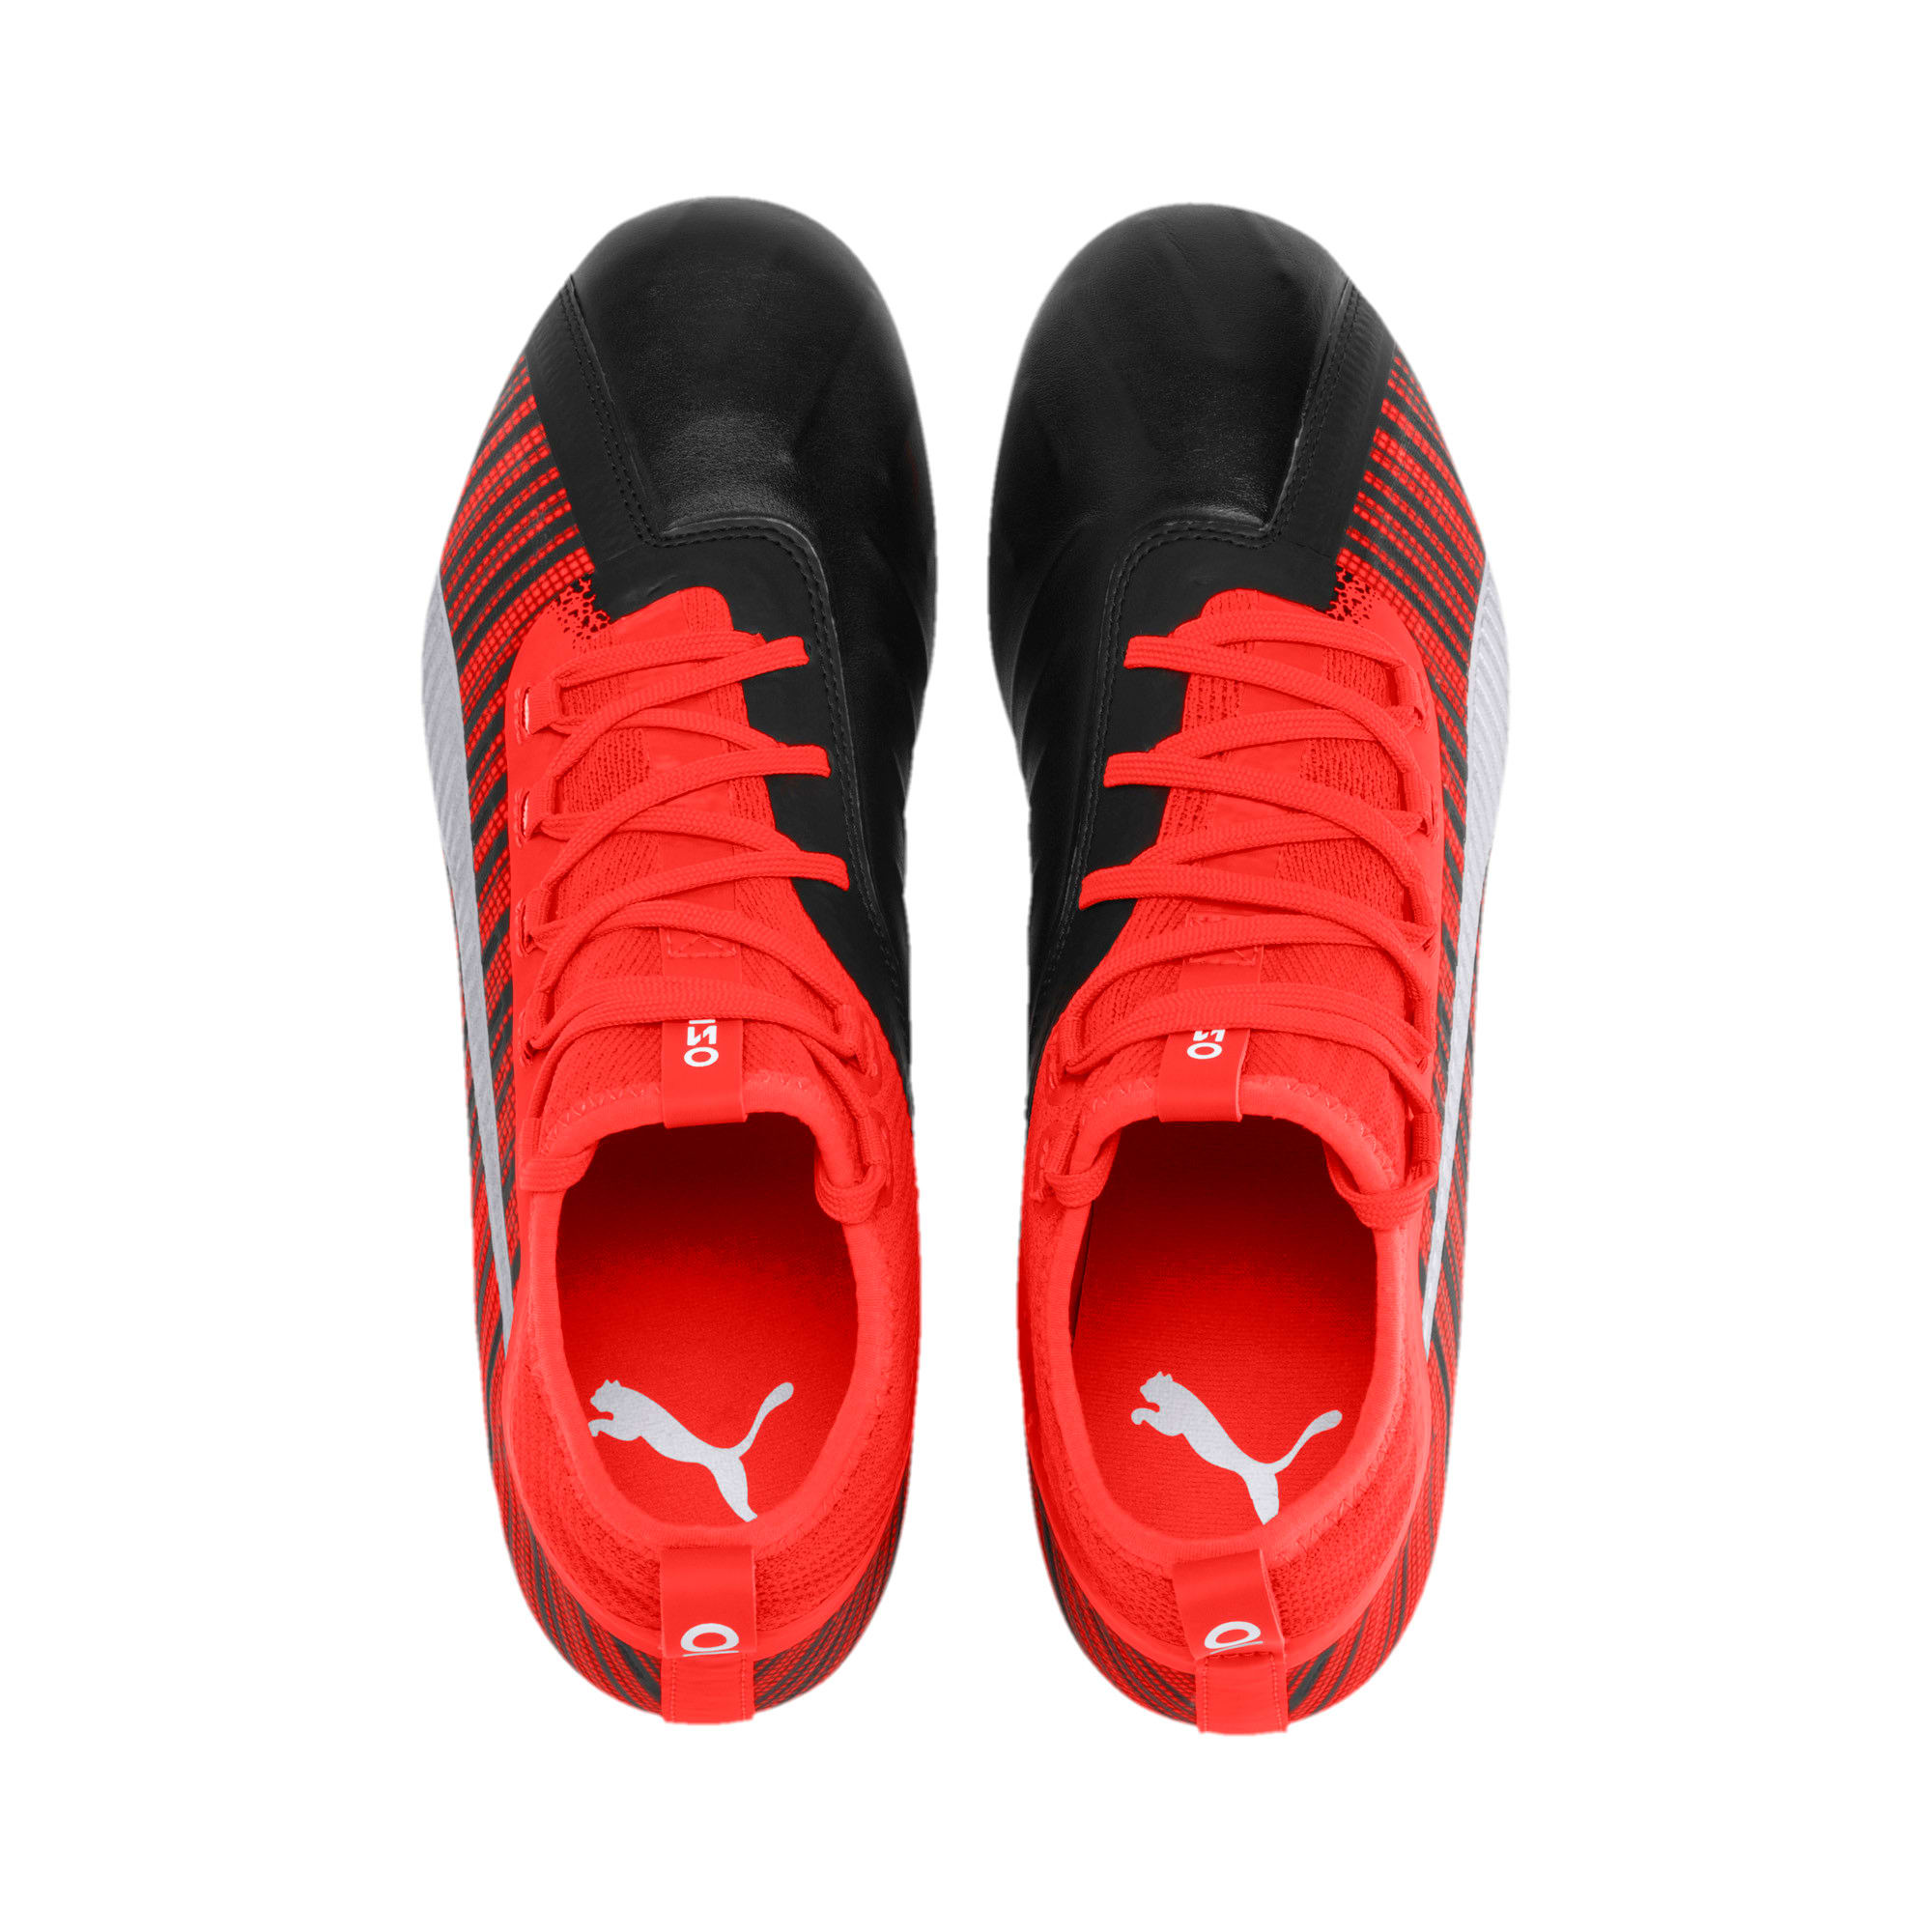 Thumbnail 7 of PUMA ONE 5.2 FG/AG Herren Fußballschuhe, Black-Nrgy Red-Aged Silver, medium